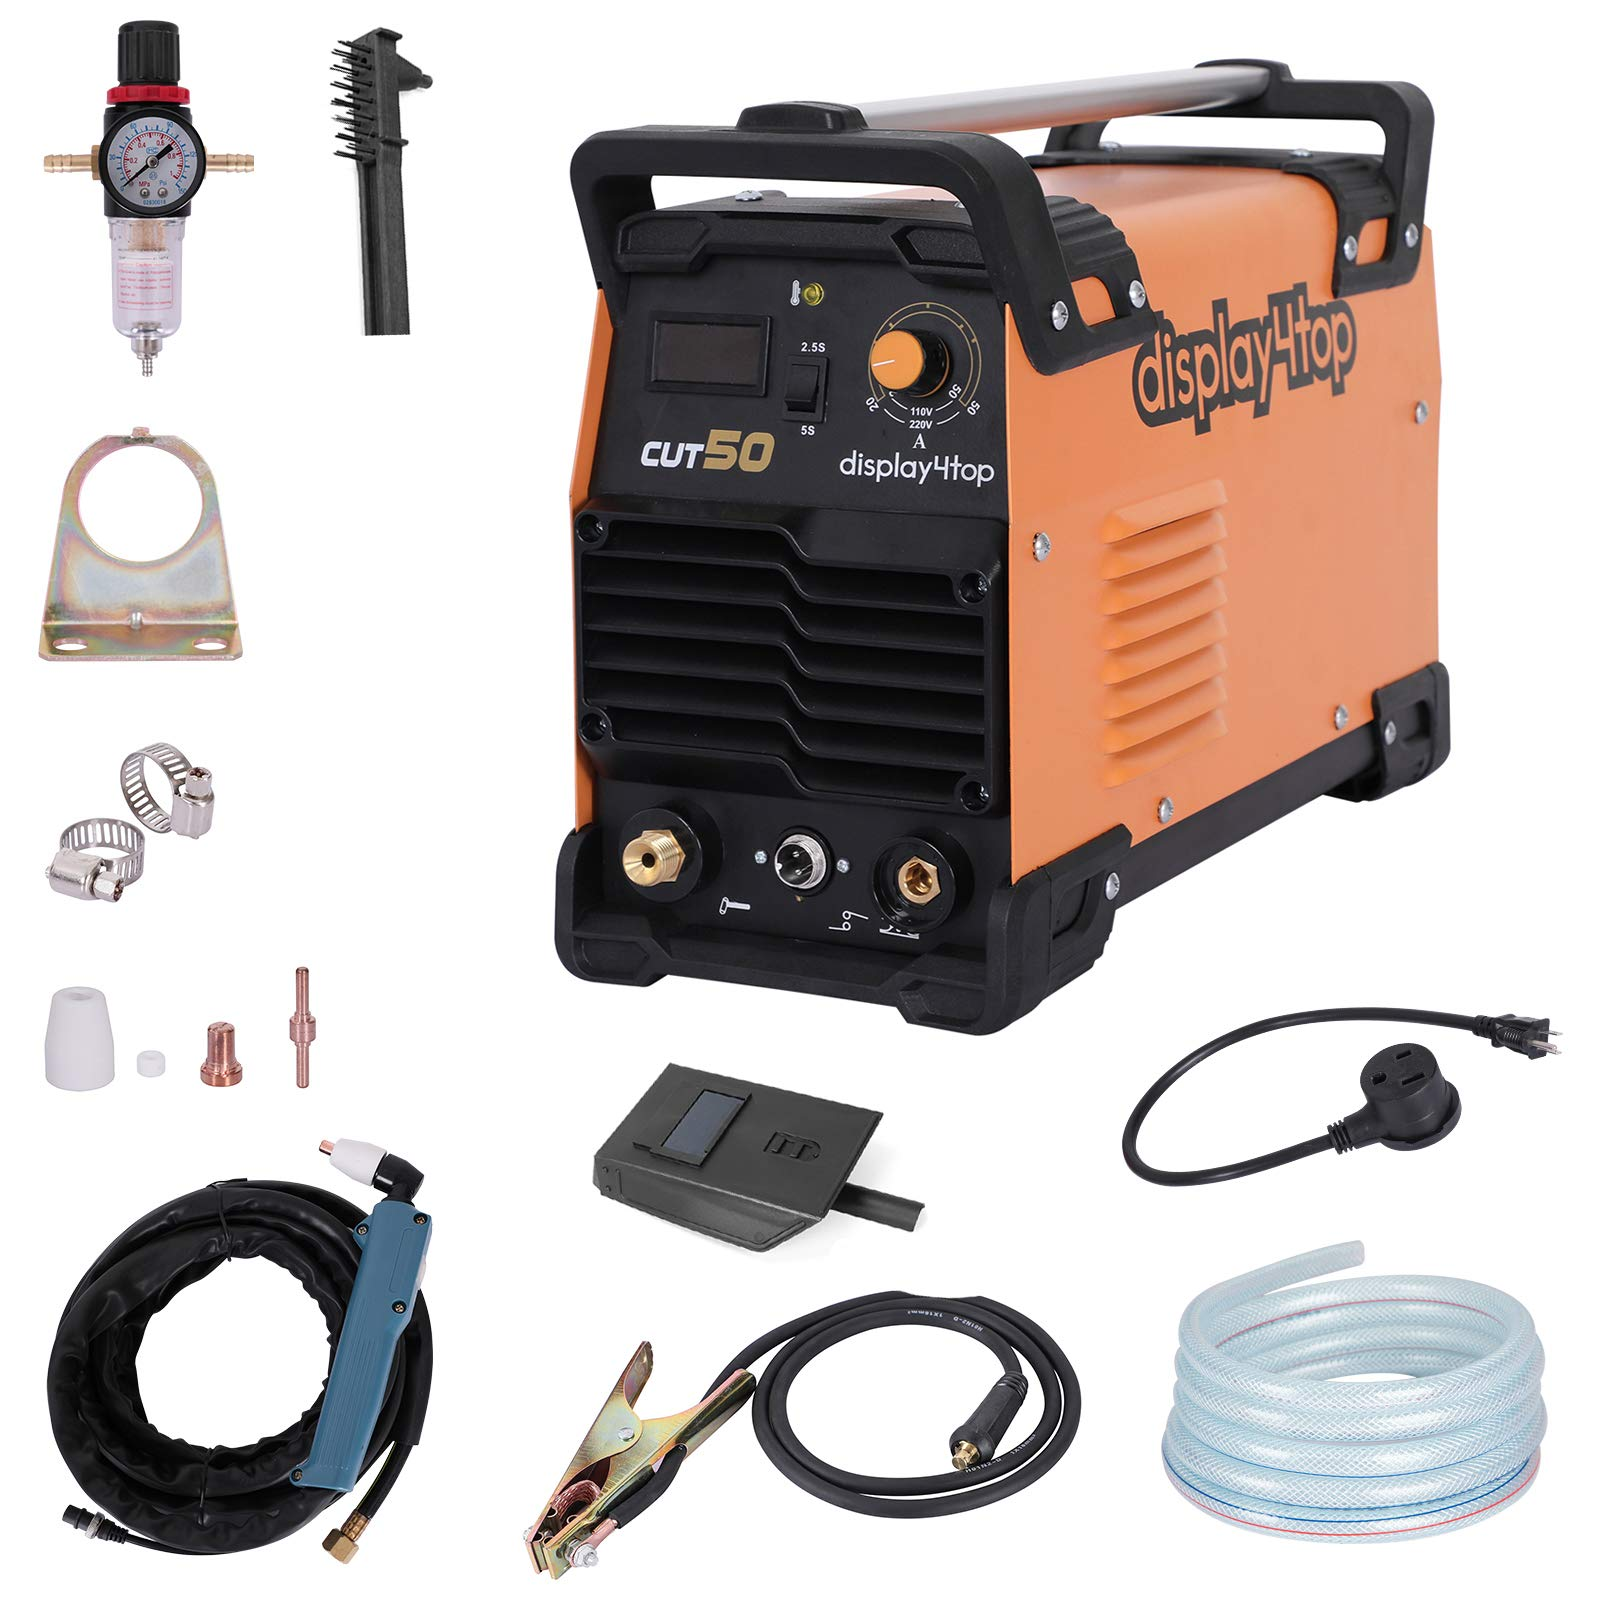 Display4top CUT-50 DC Inverter Plasma Cutter,110/220V Dual Voltage Compact Metal Cutting Machine by Display4top